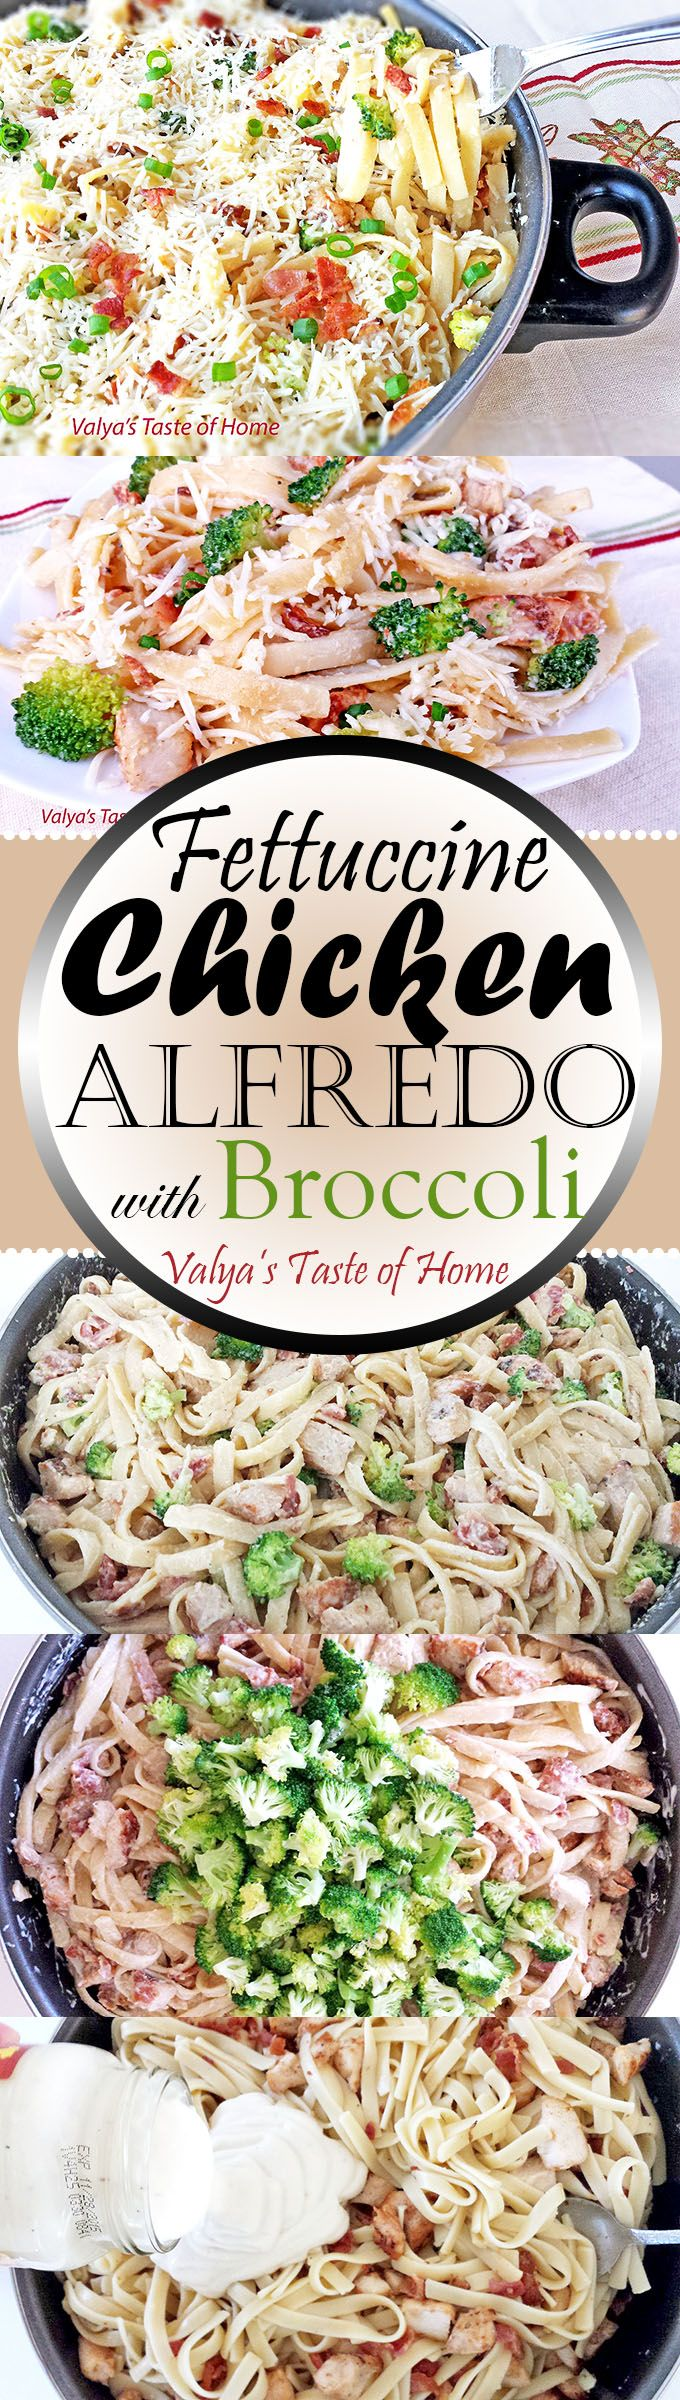 This recipe is quick and easy to do but the flavor of it is spectacular. Lightly seasoned grilled chicken breast strips with a little fried bacon and Steamed Broccoli in creamy Alfredo sauce, tossed with Parmesan cheese. Very simple and easy to prepare dinner that will put a smile on many (if not all) faces at your dinner table.